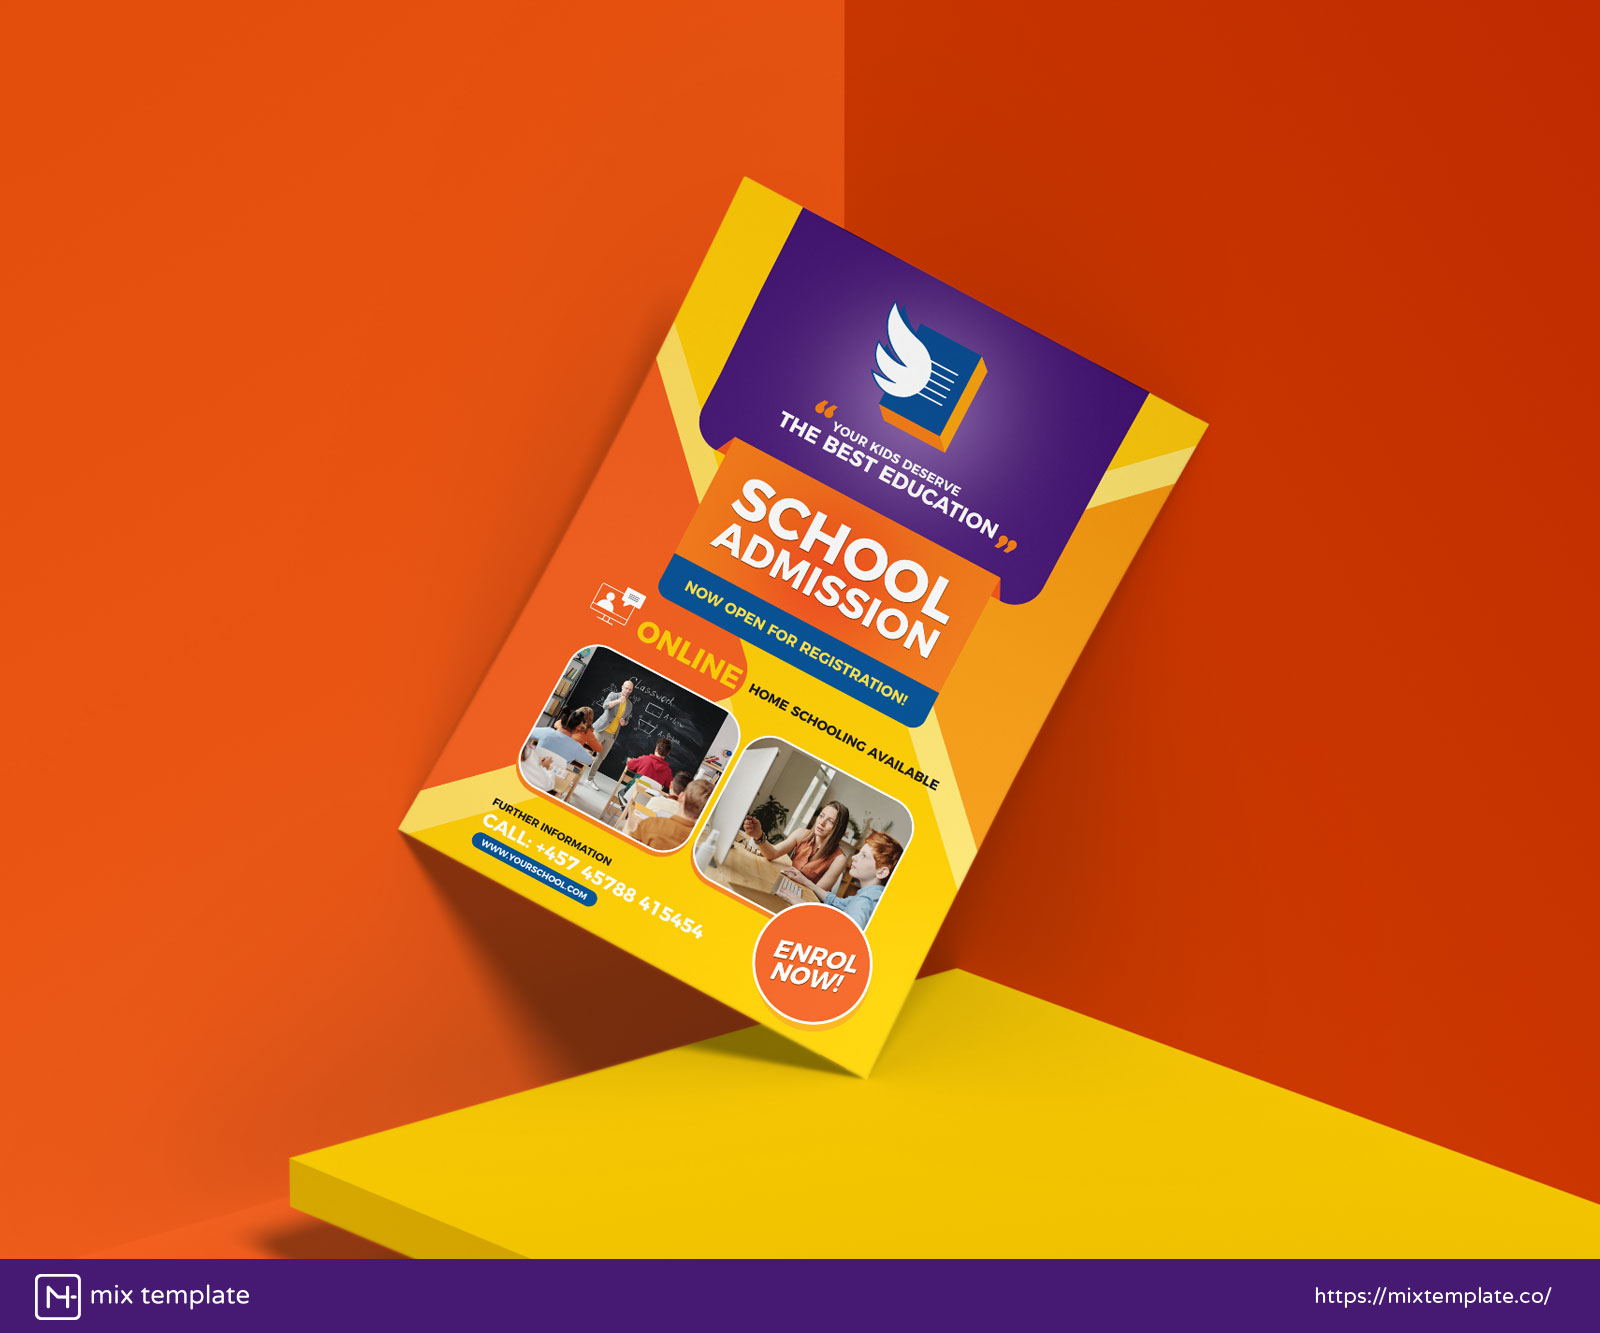 Free-Education-Flyer-Design-Template-38